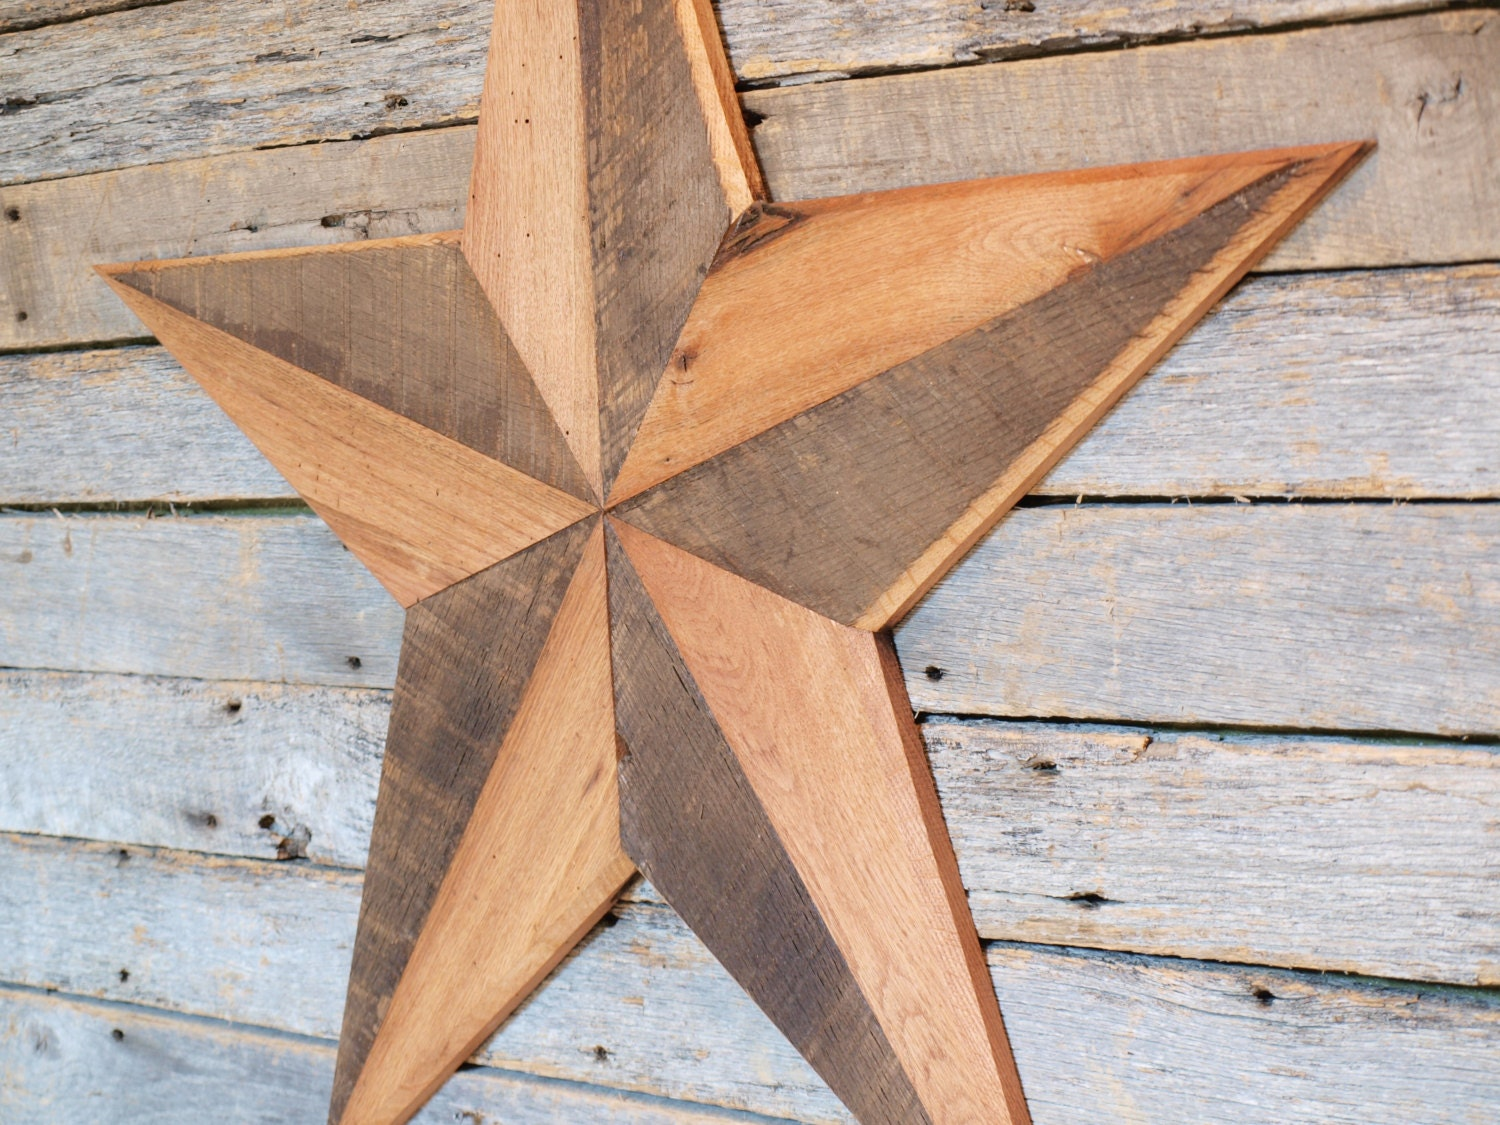 Barn star country rustic reclaimed wood